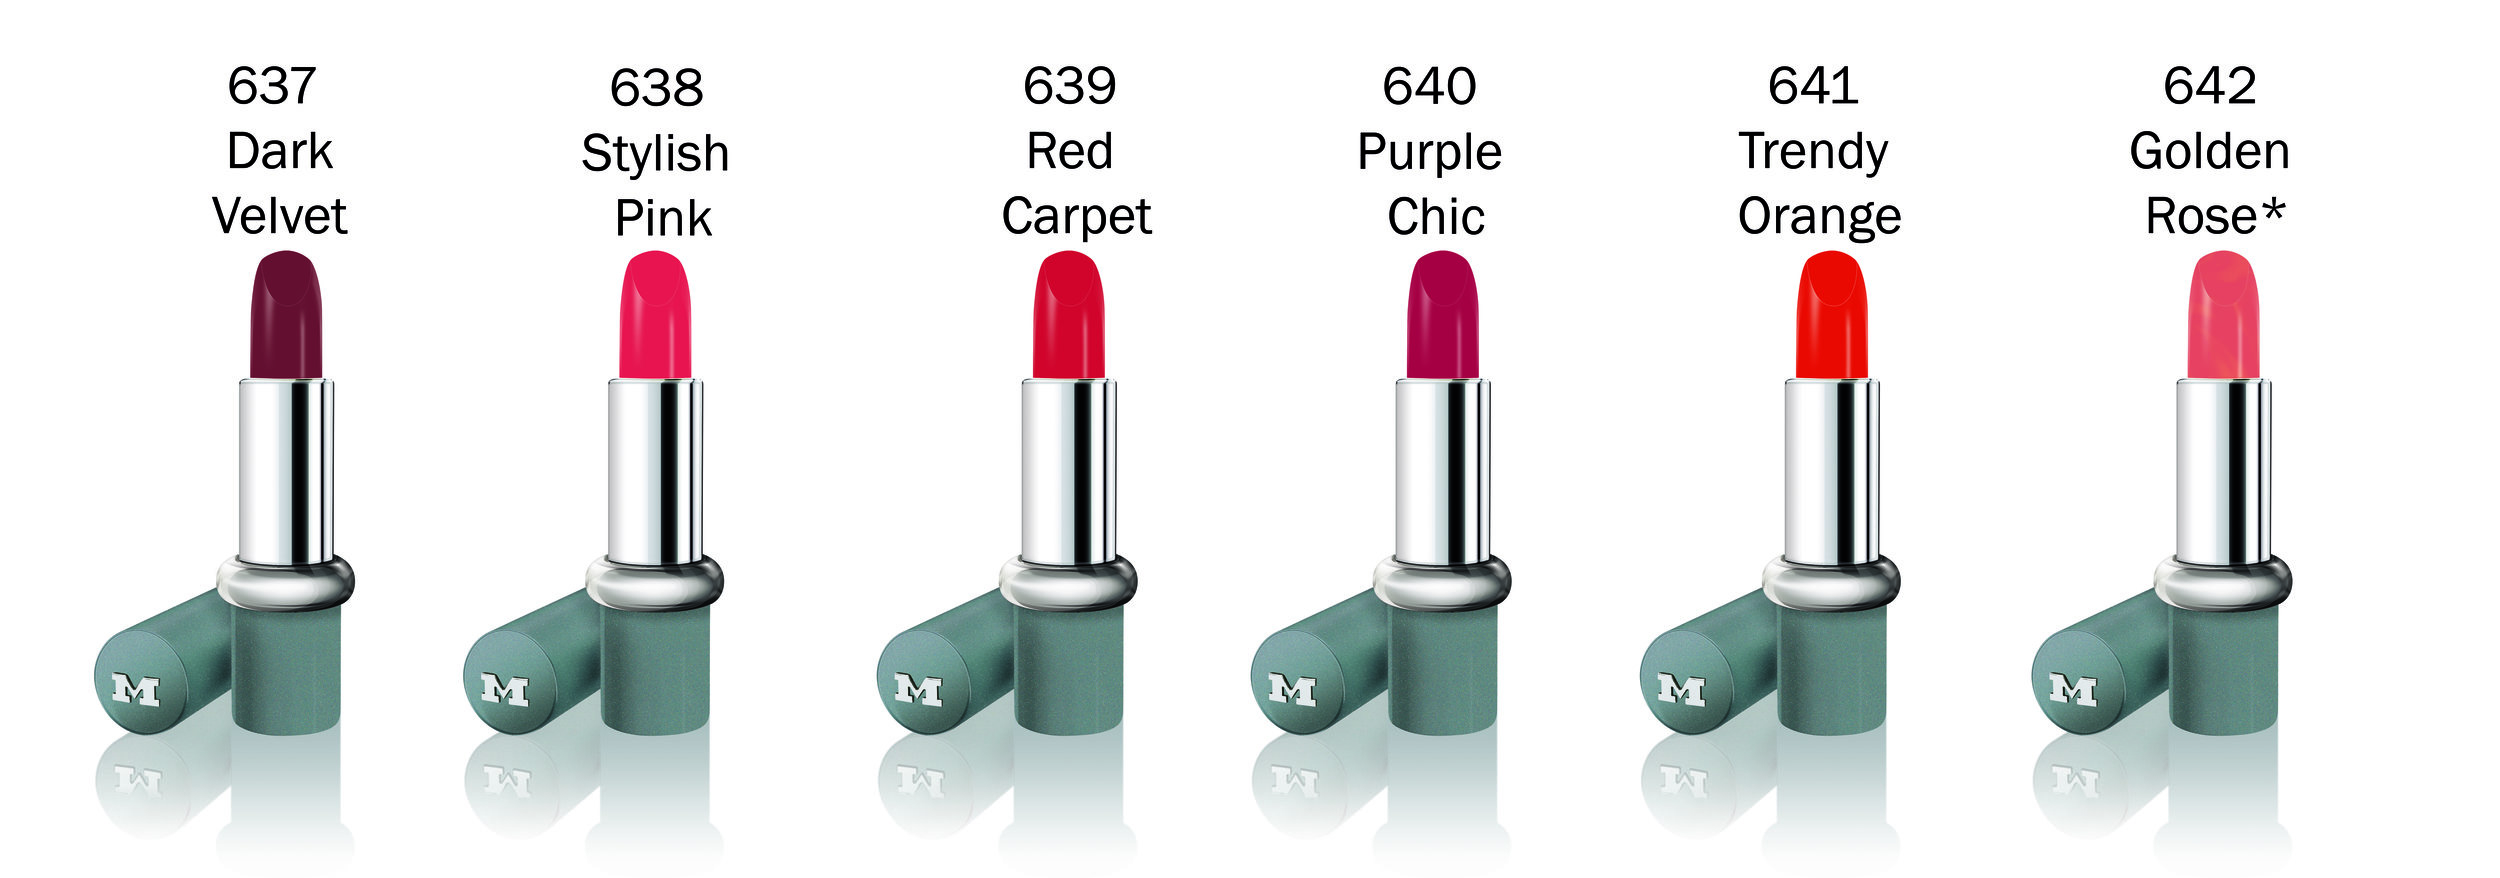 6 Lipstick Boutique Collection.jpg